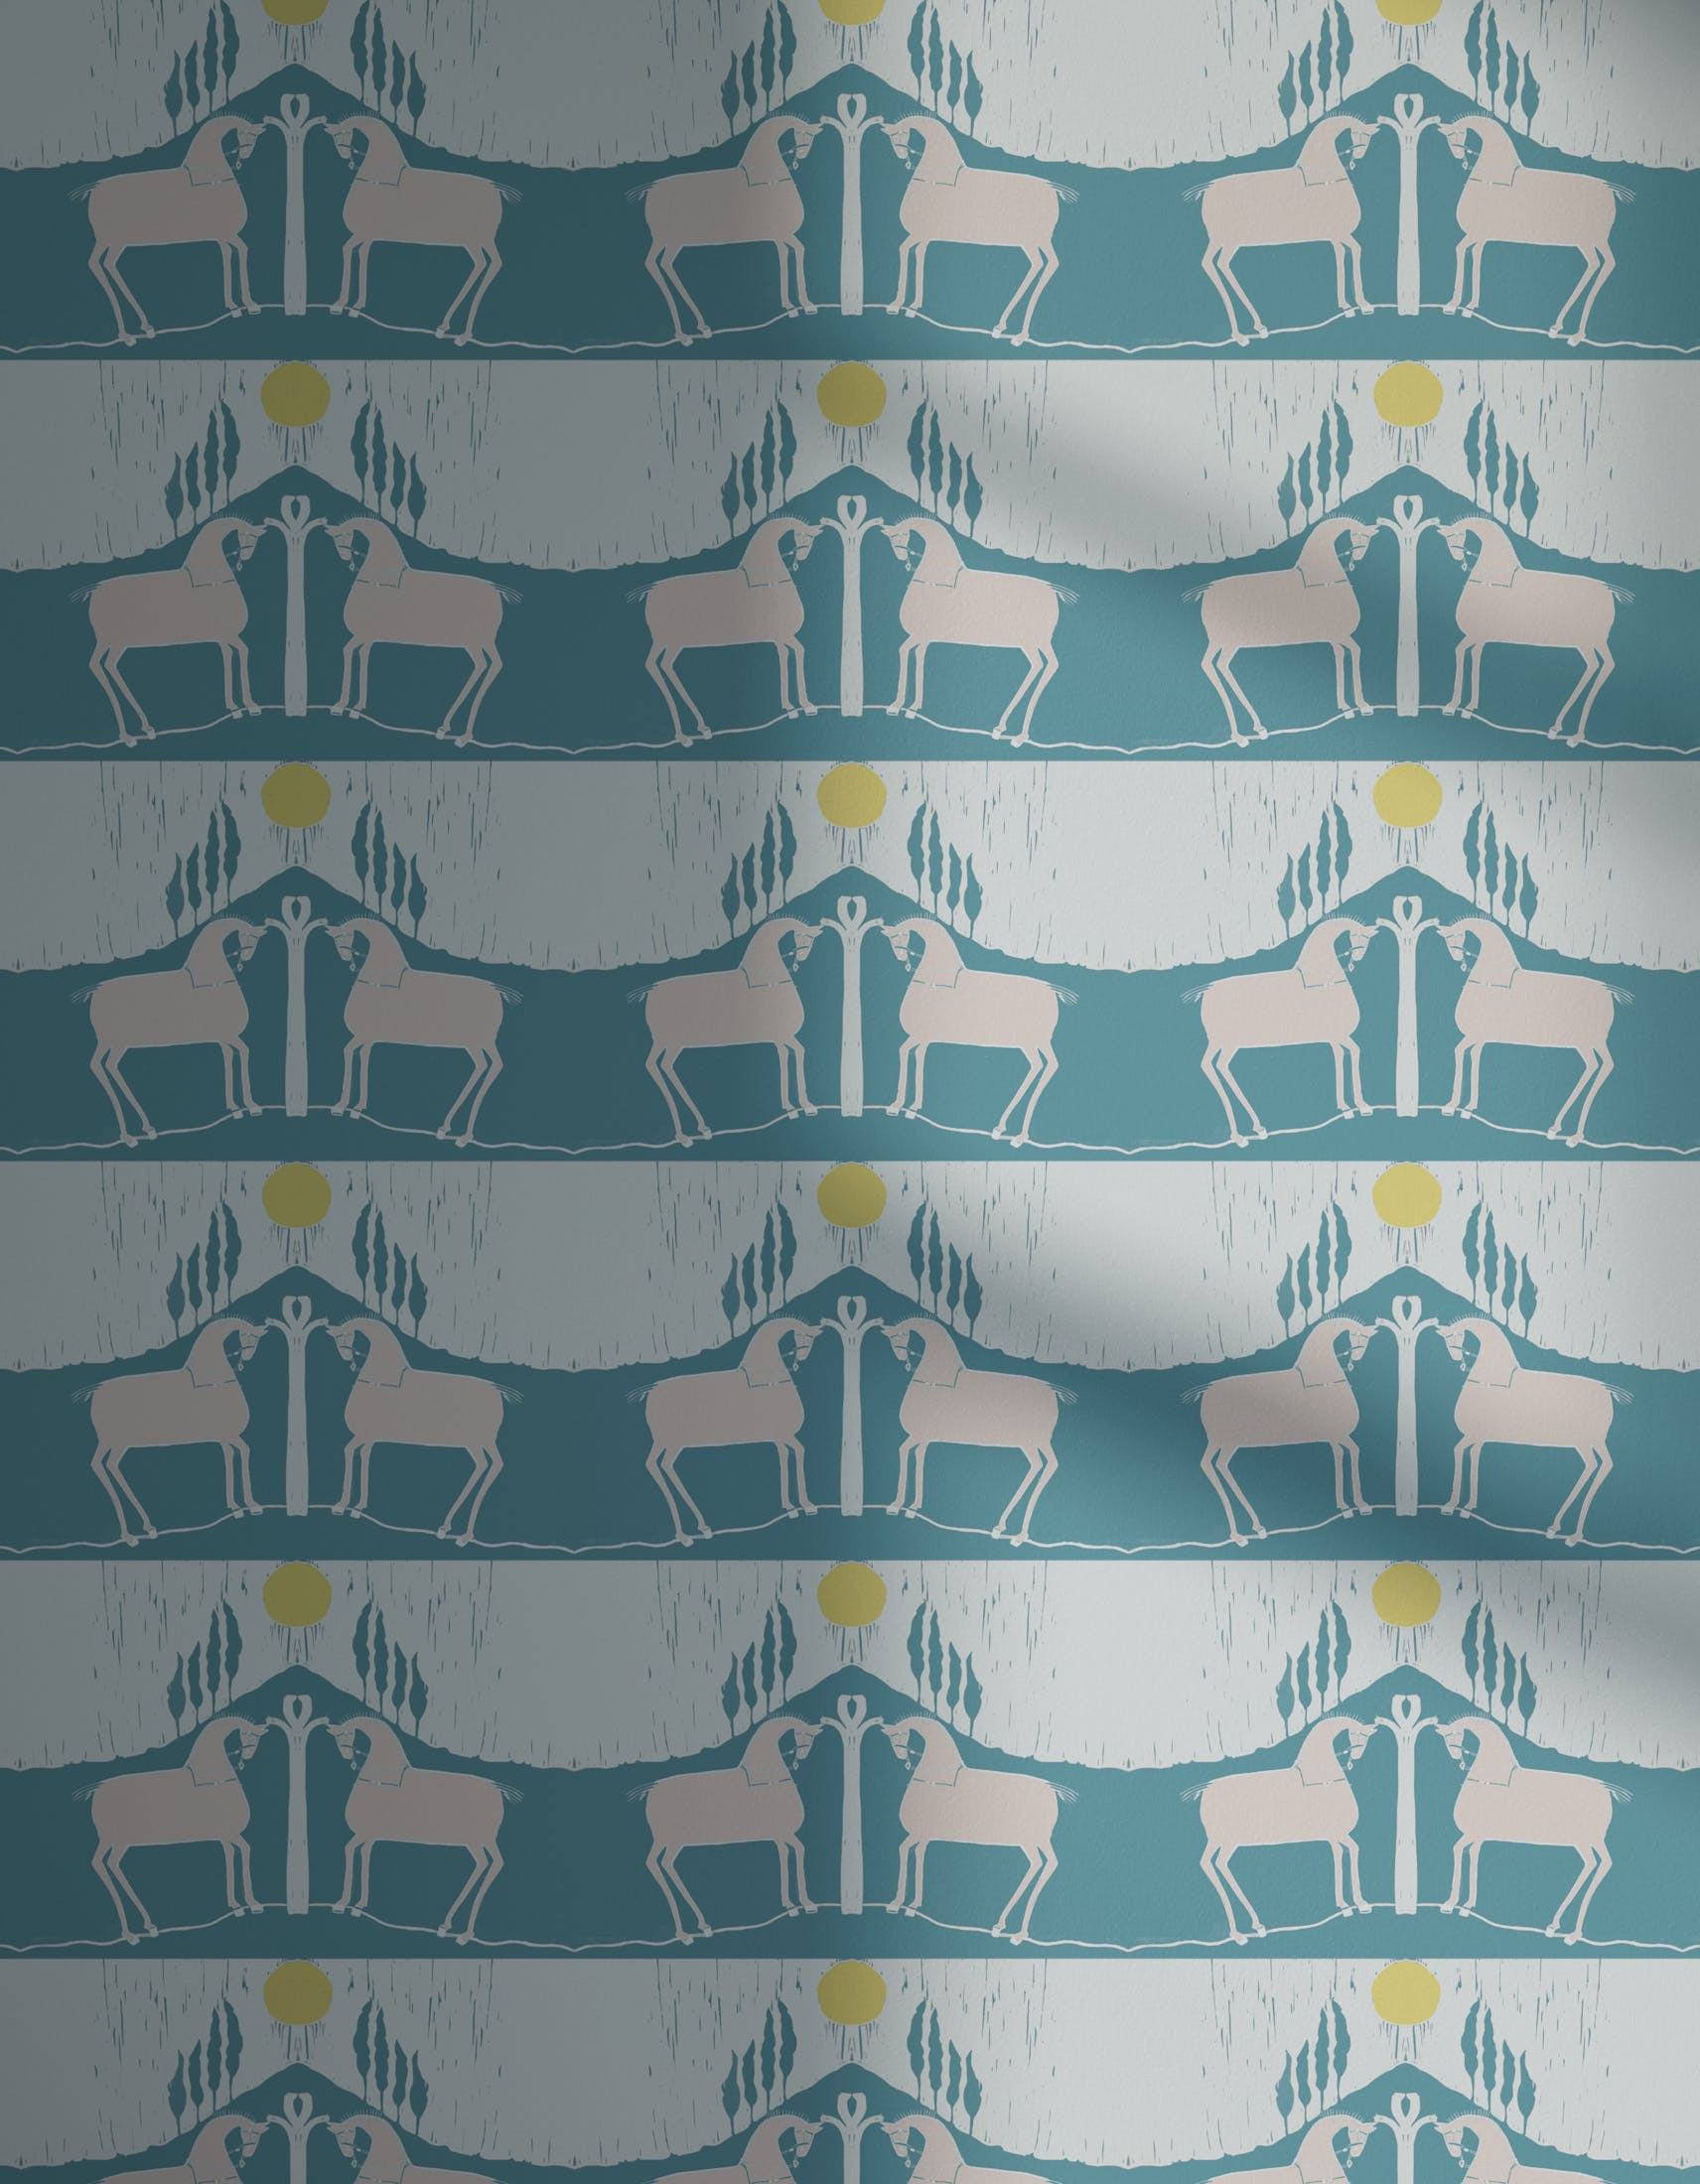 Lick x Annika Reed Western 01 teal and yellow animal wallpaper with shadow